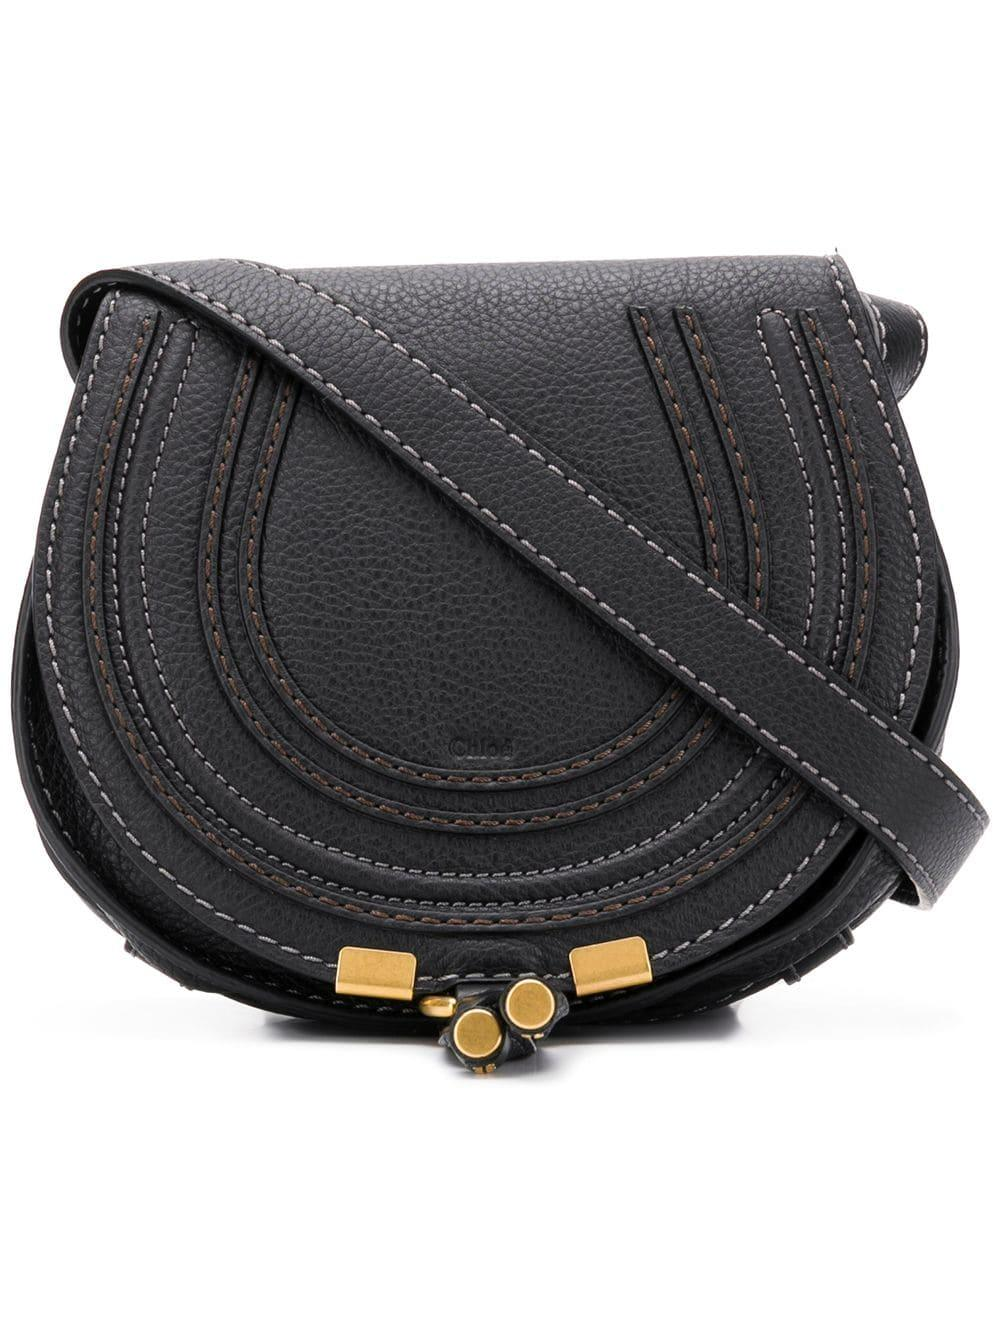 Marcie Small Bag